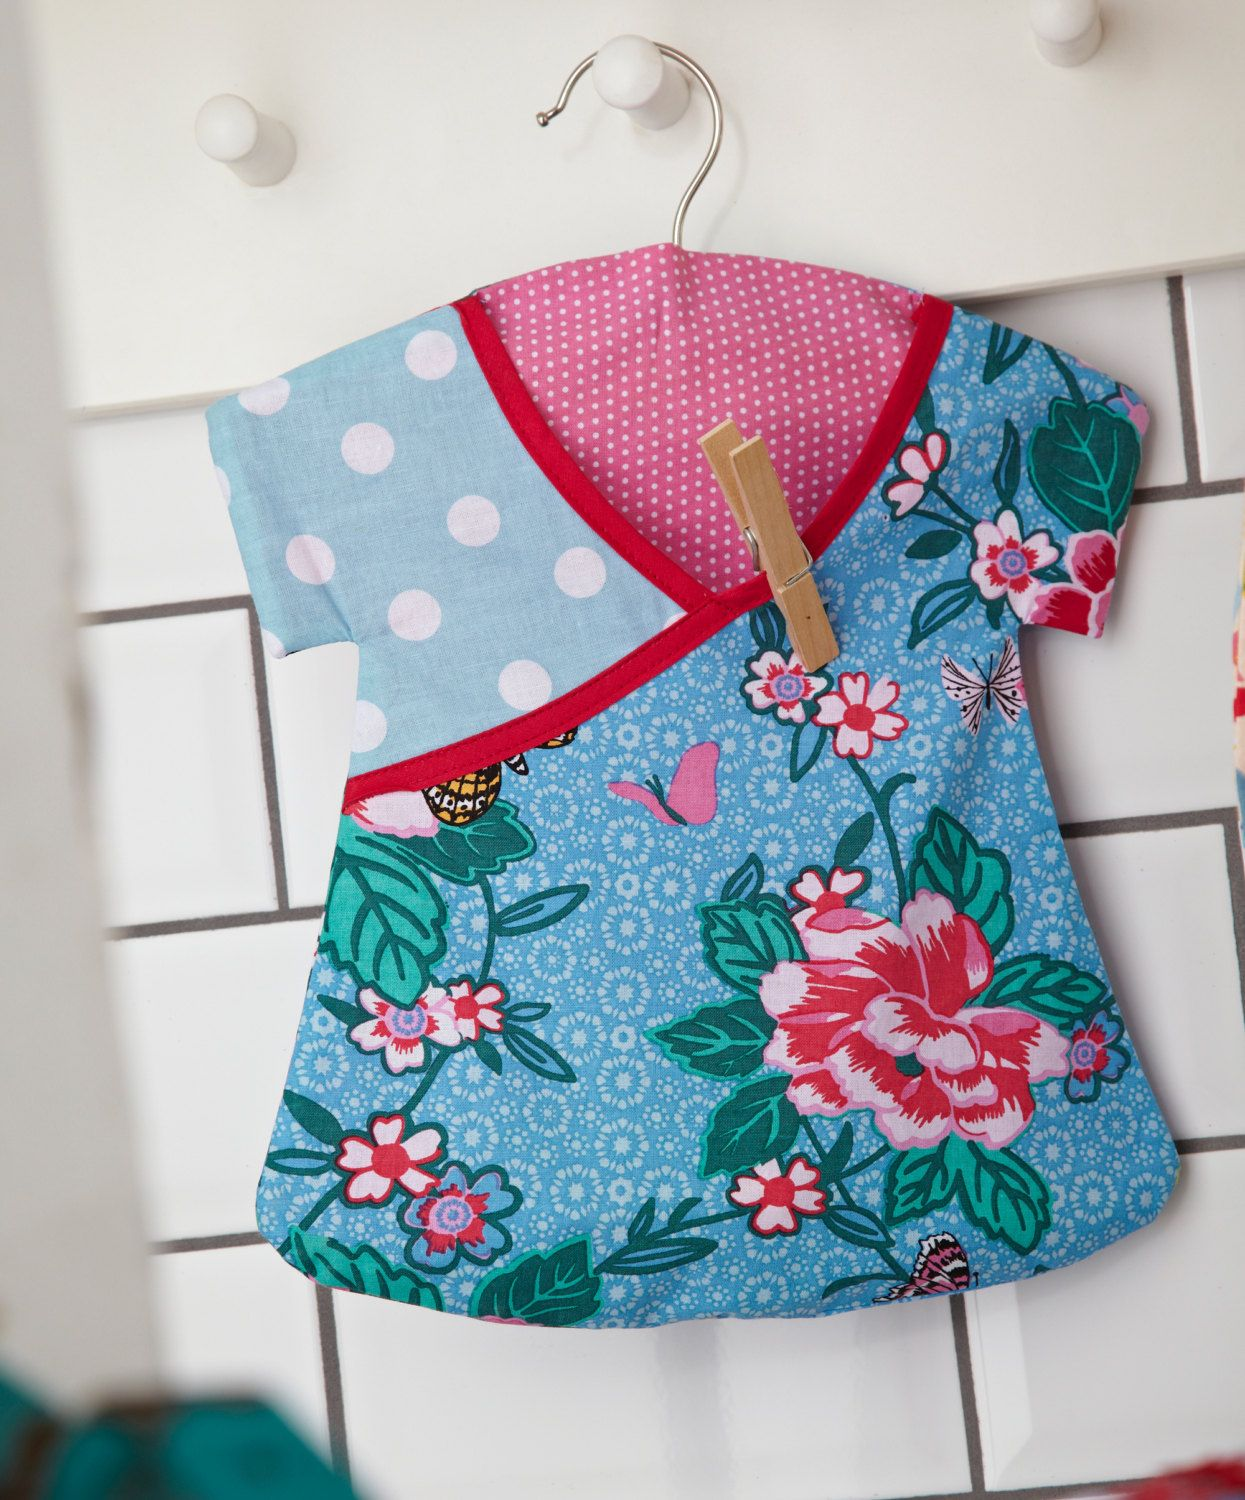 Clothes Peg Bag Retro Dress Shaped with by mountainlodge on love it ...